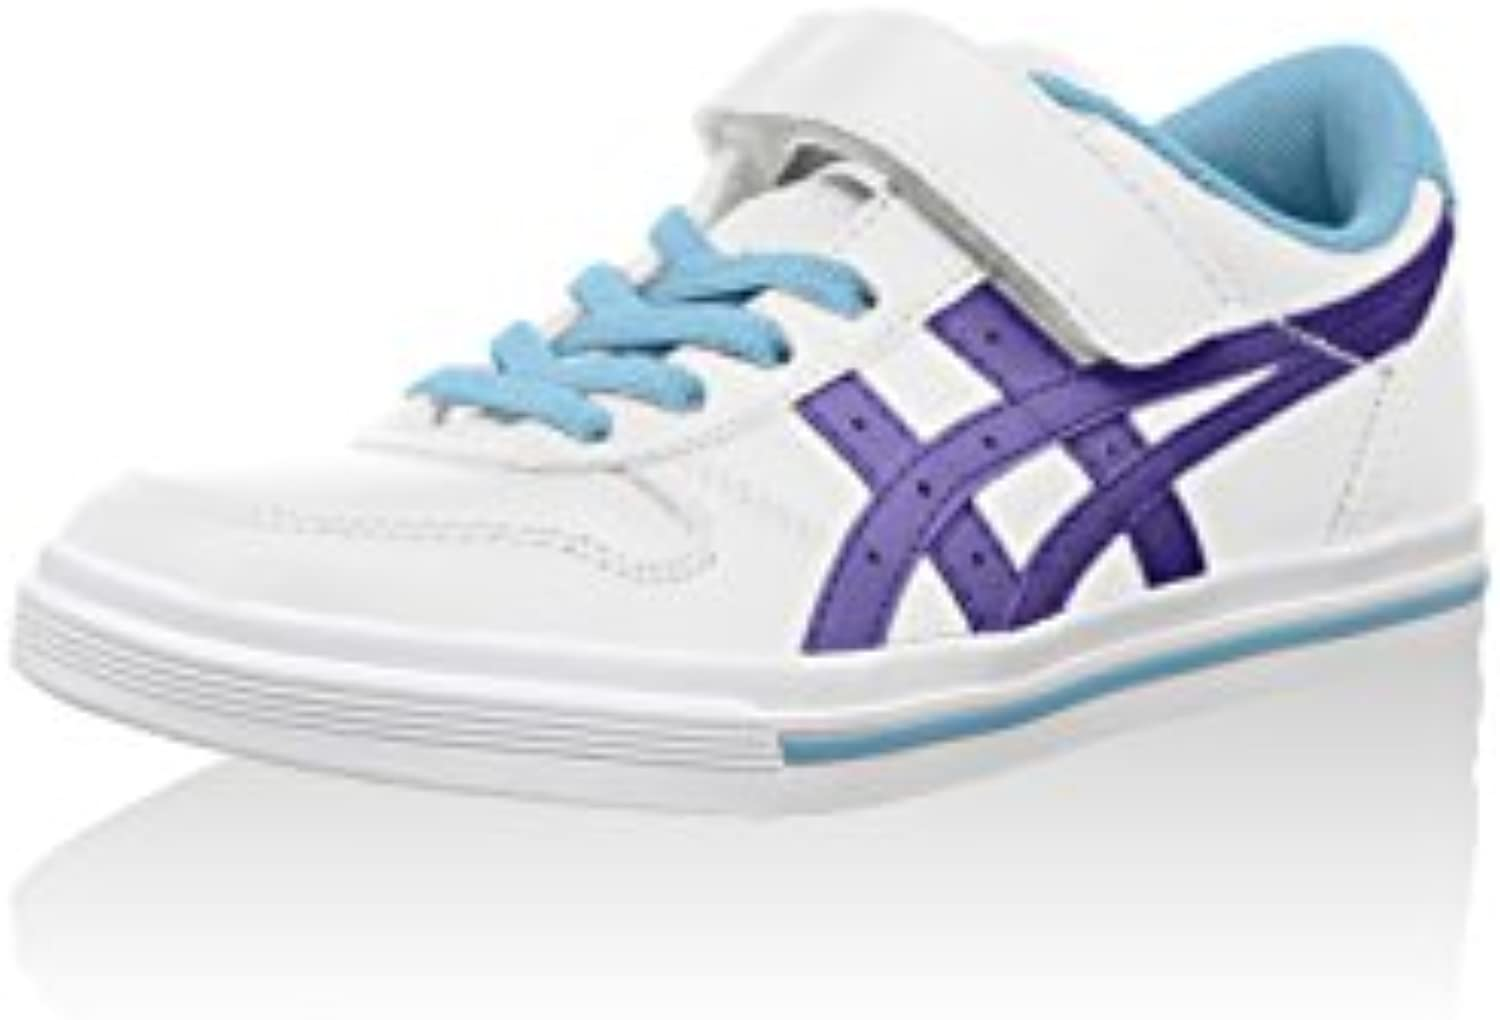 Onitsuka Tiger Zapatillas Aaron PS Blanco/Morado EU 31.5  -